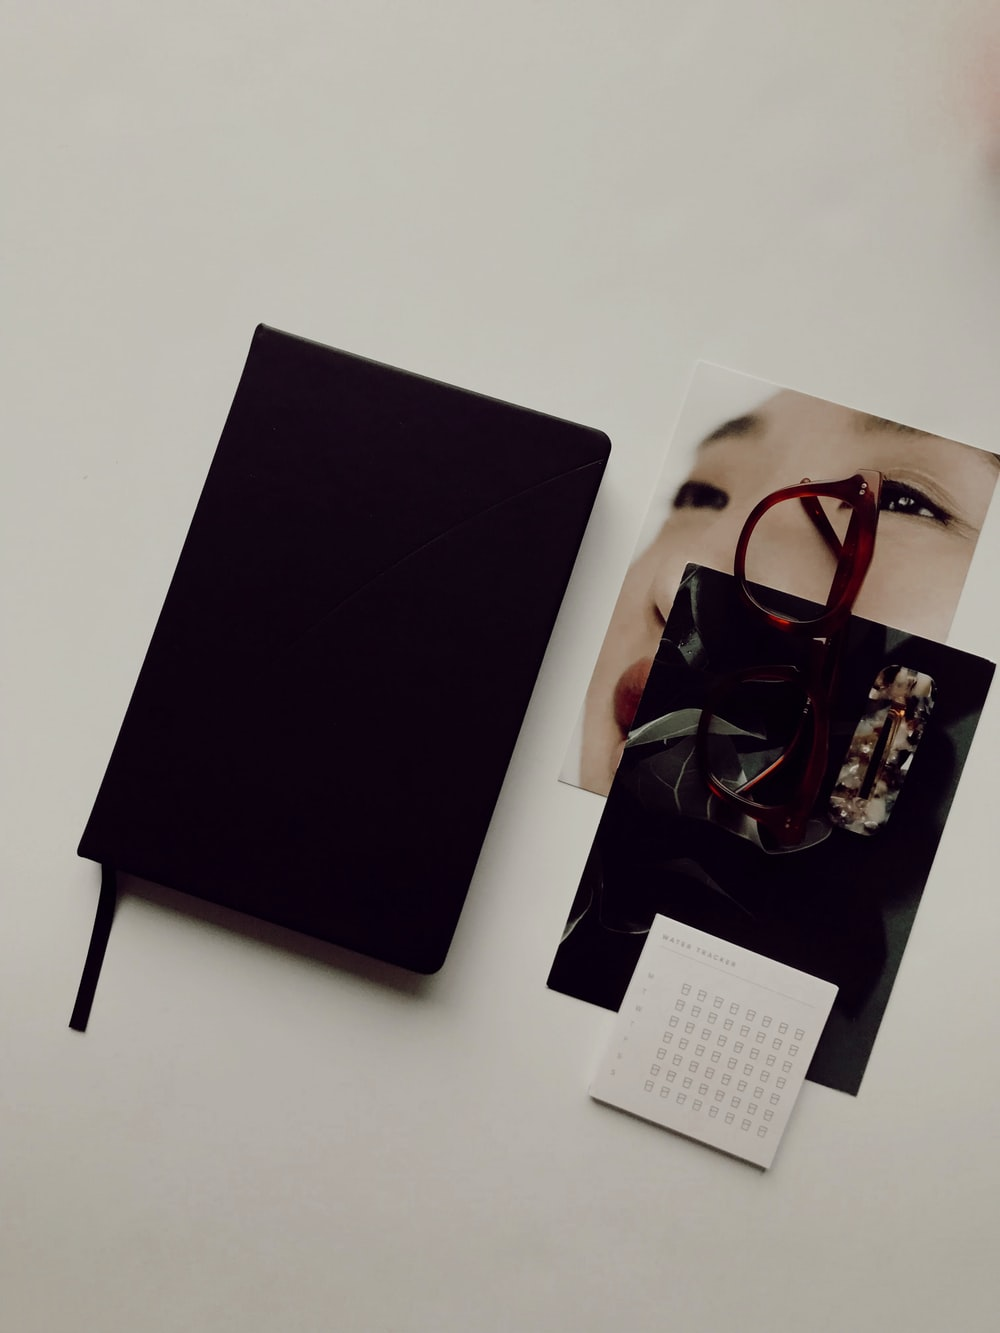 black book besides brown eyeglasses and photos